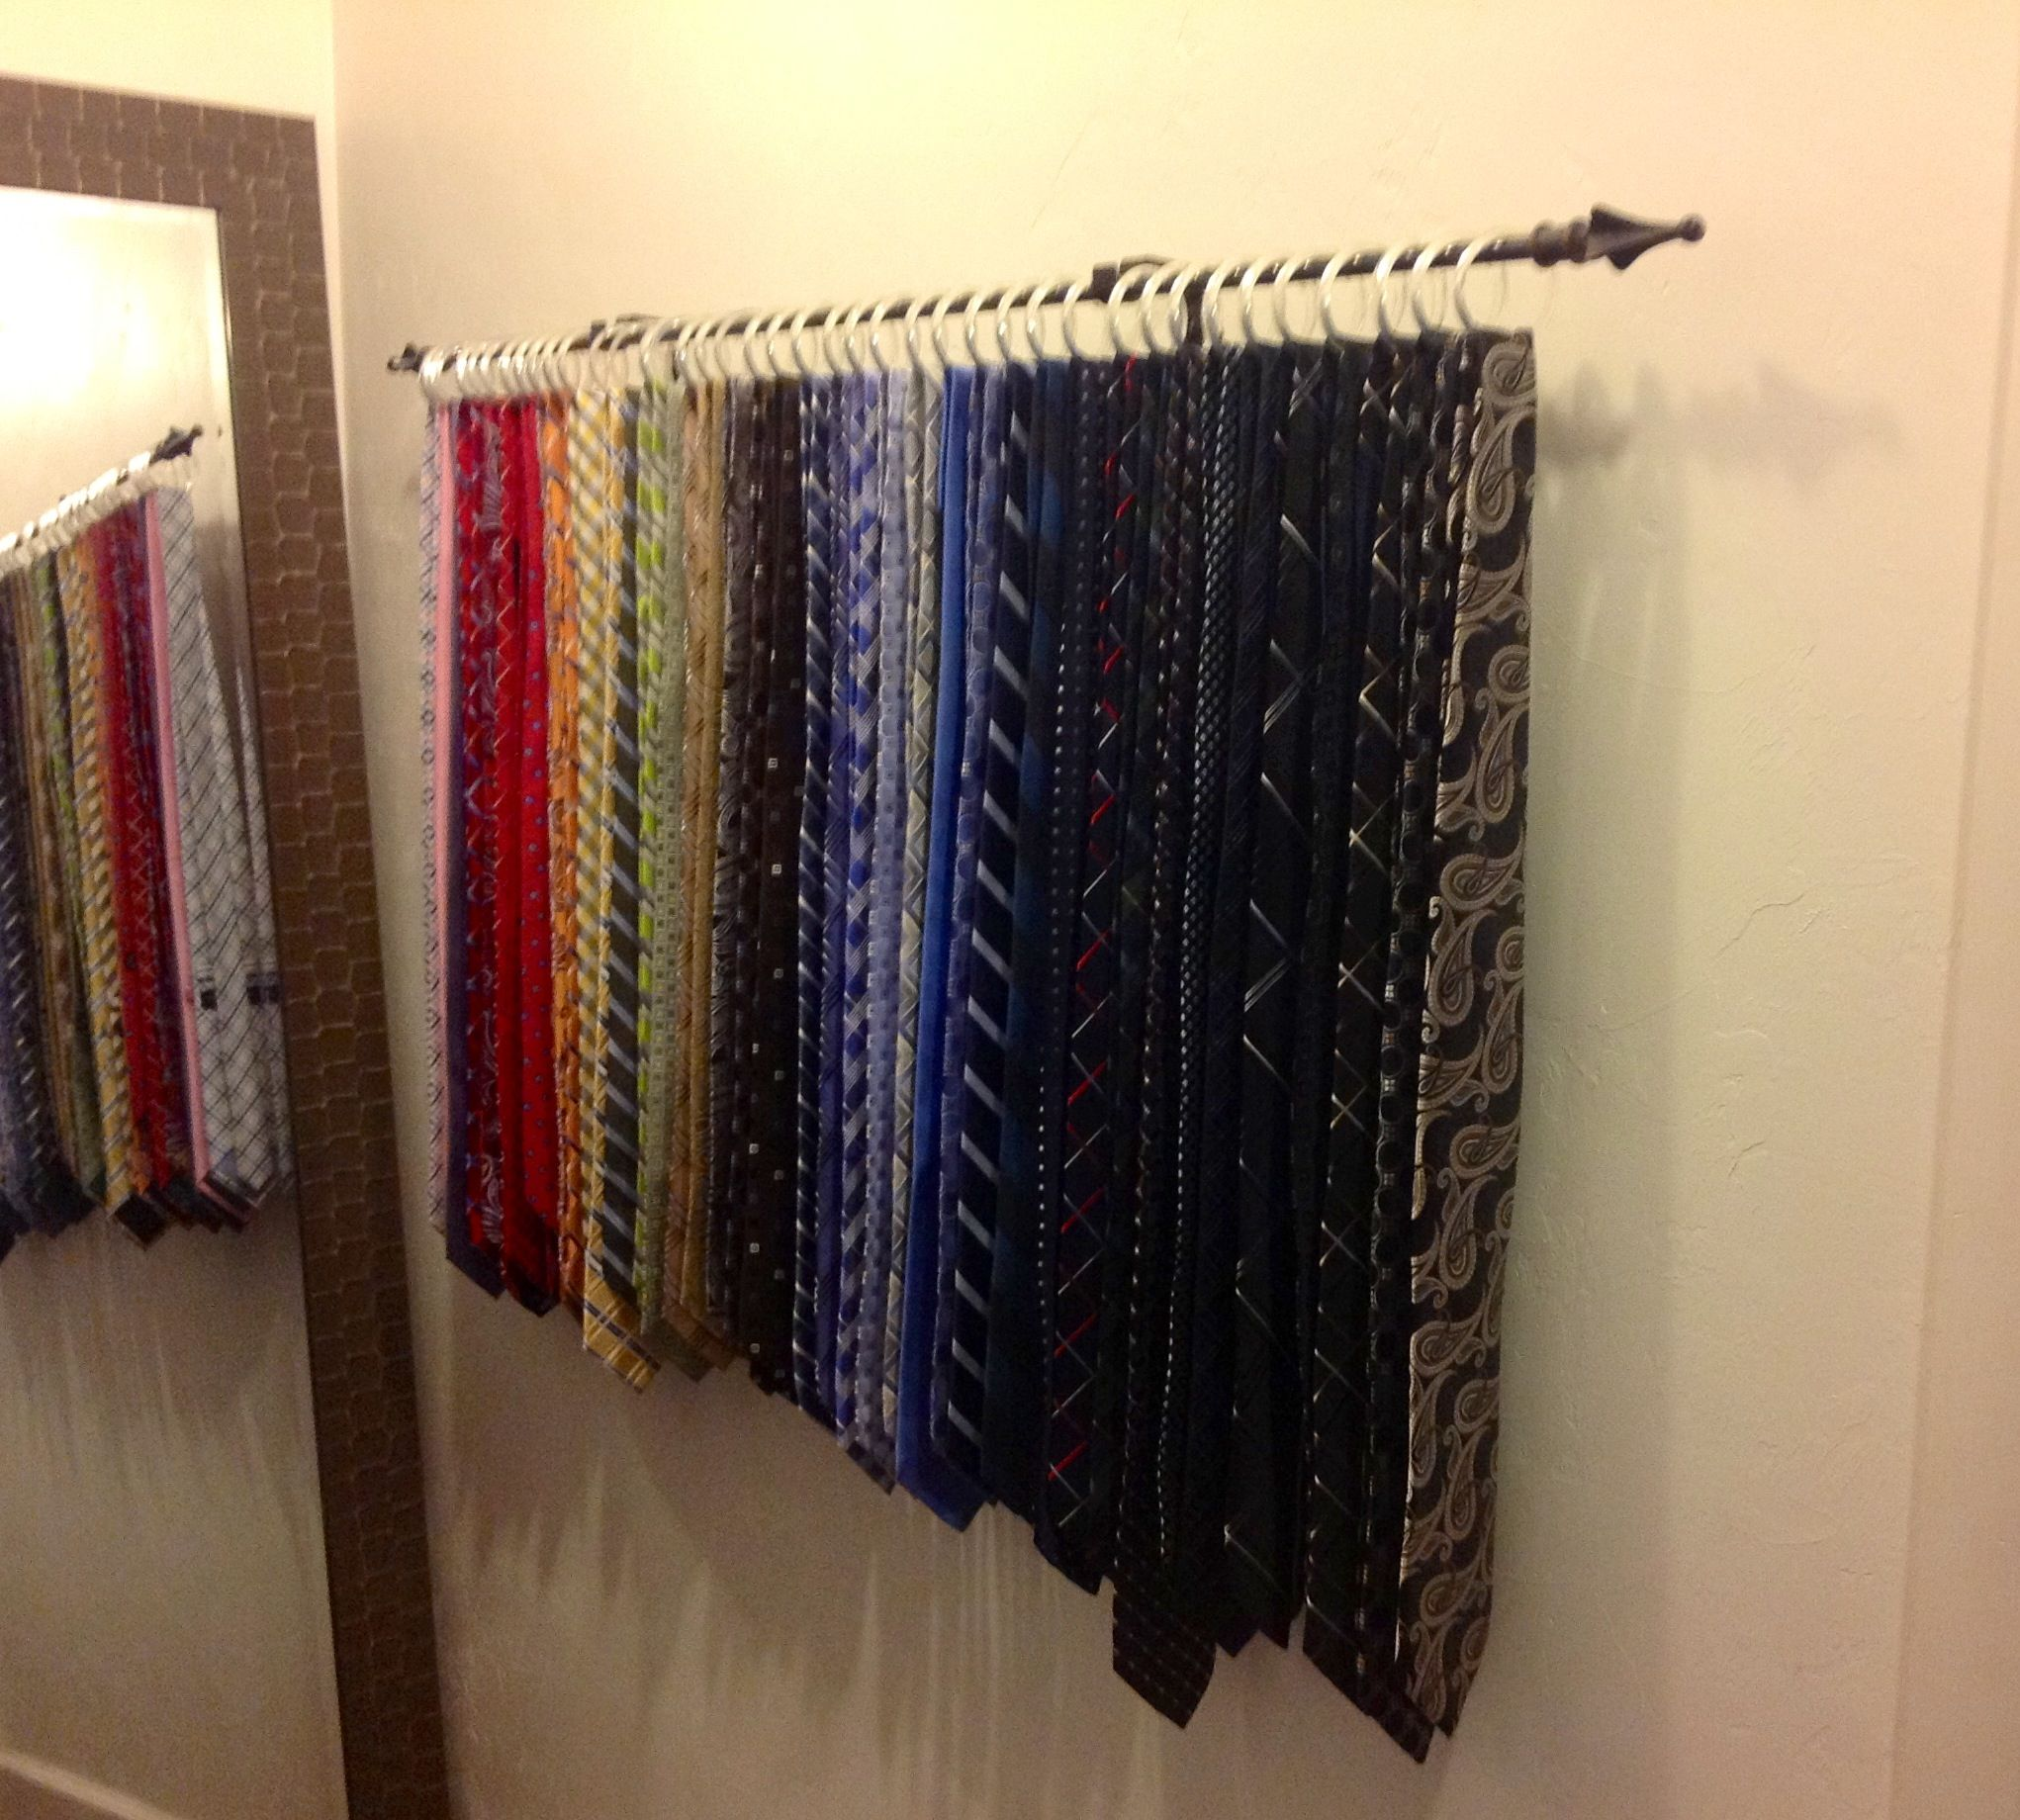 Best Tie Racks For Closets: Wall Mounted Tie Rack - Google Search